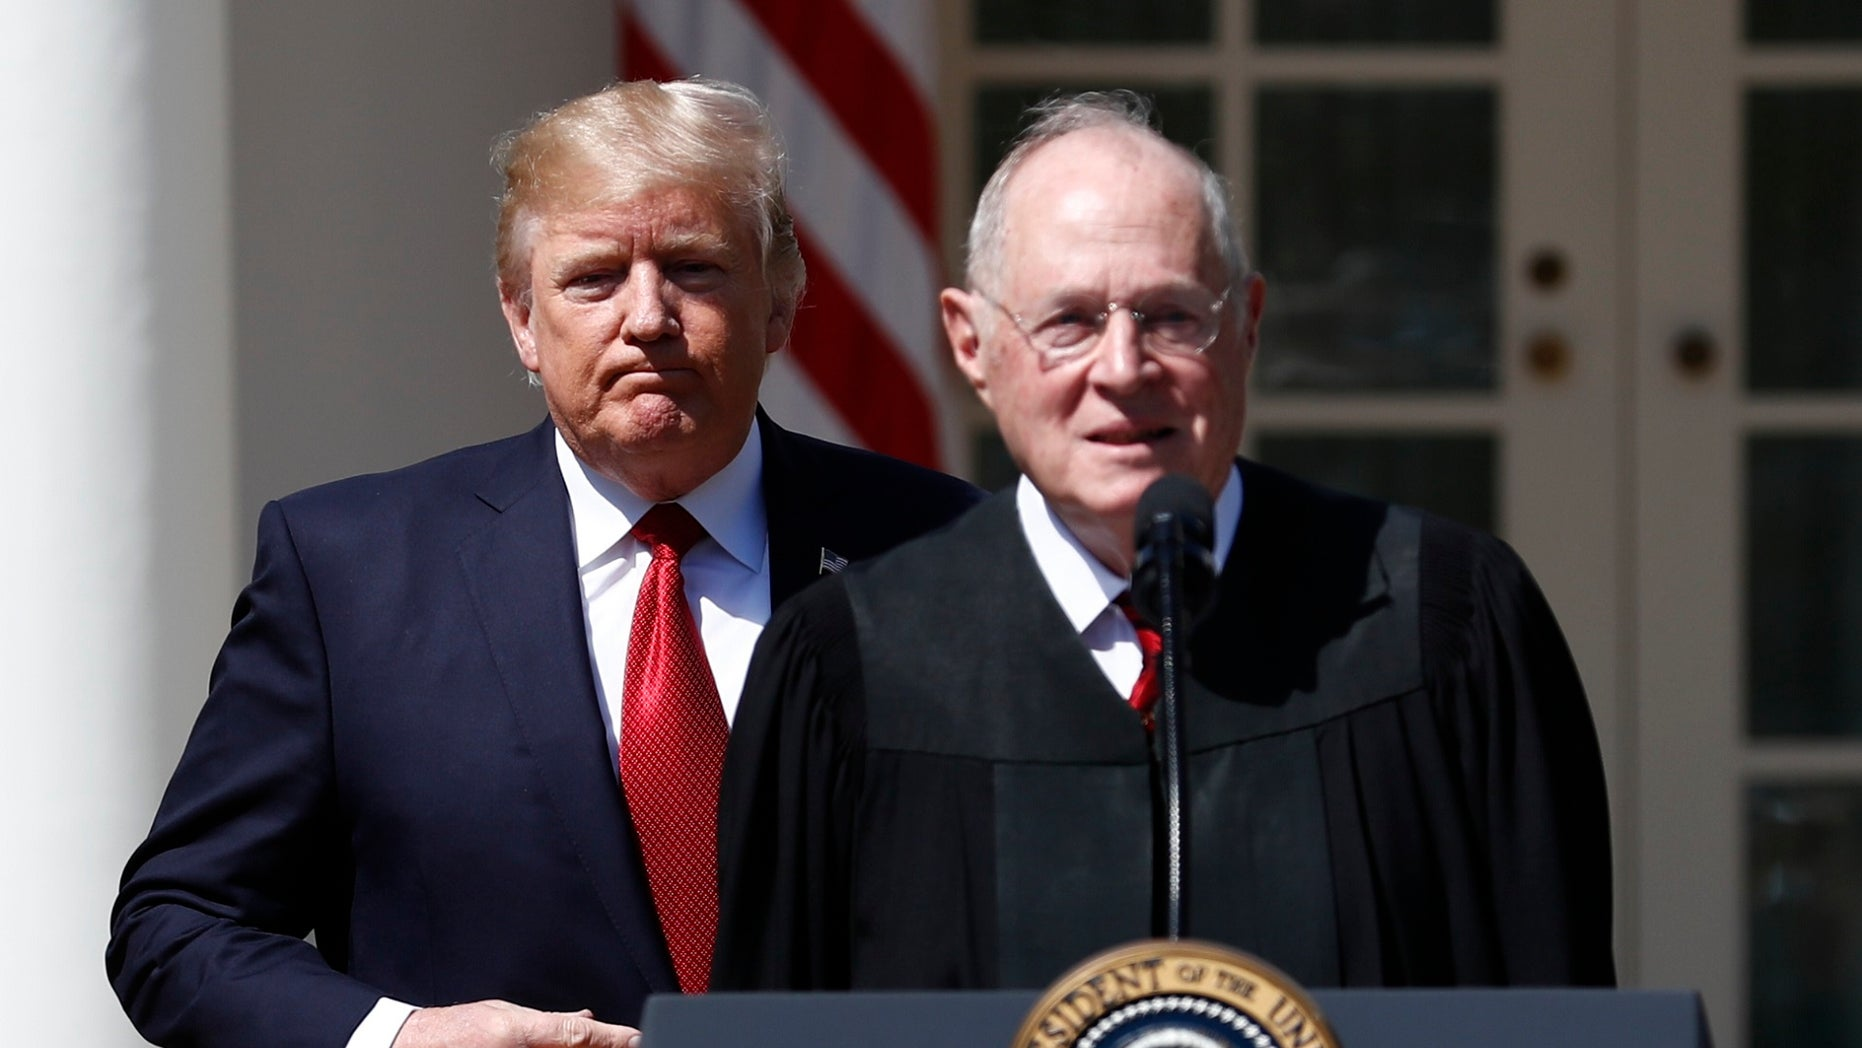 FILE - In this April 10, 2017 photo, President Donald Trump, left, and Supreme Court Justice Anthony Kennedy participate in a public swearing-in ceremony for Justice Neil Gorsuch in the Rose Garden of the White House White House in Washington. The 81-year-old Kennedy said Tuesday, June 27, 2018, that he is retiring after more than 30 years on the court.